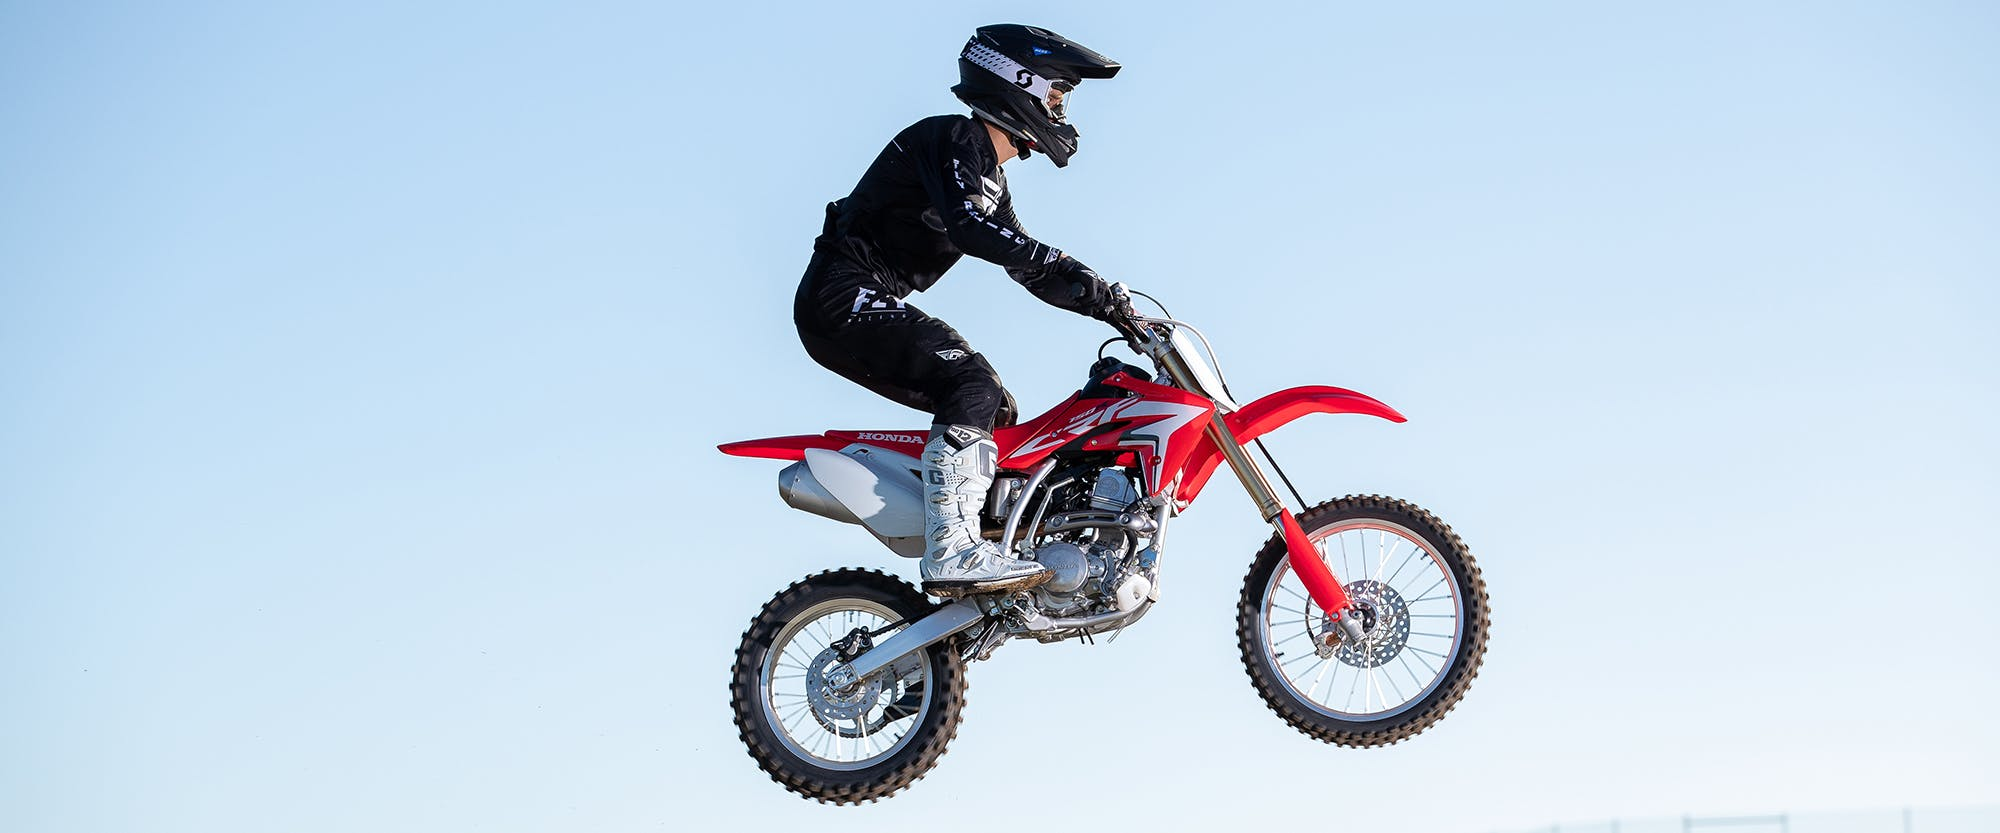 Honda CRF150R in extreme red doing air stunts